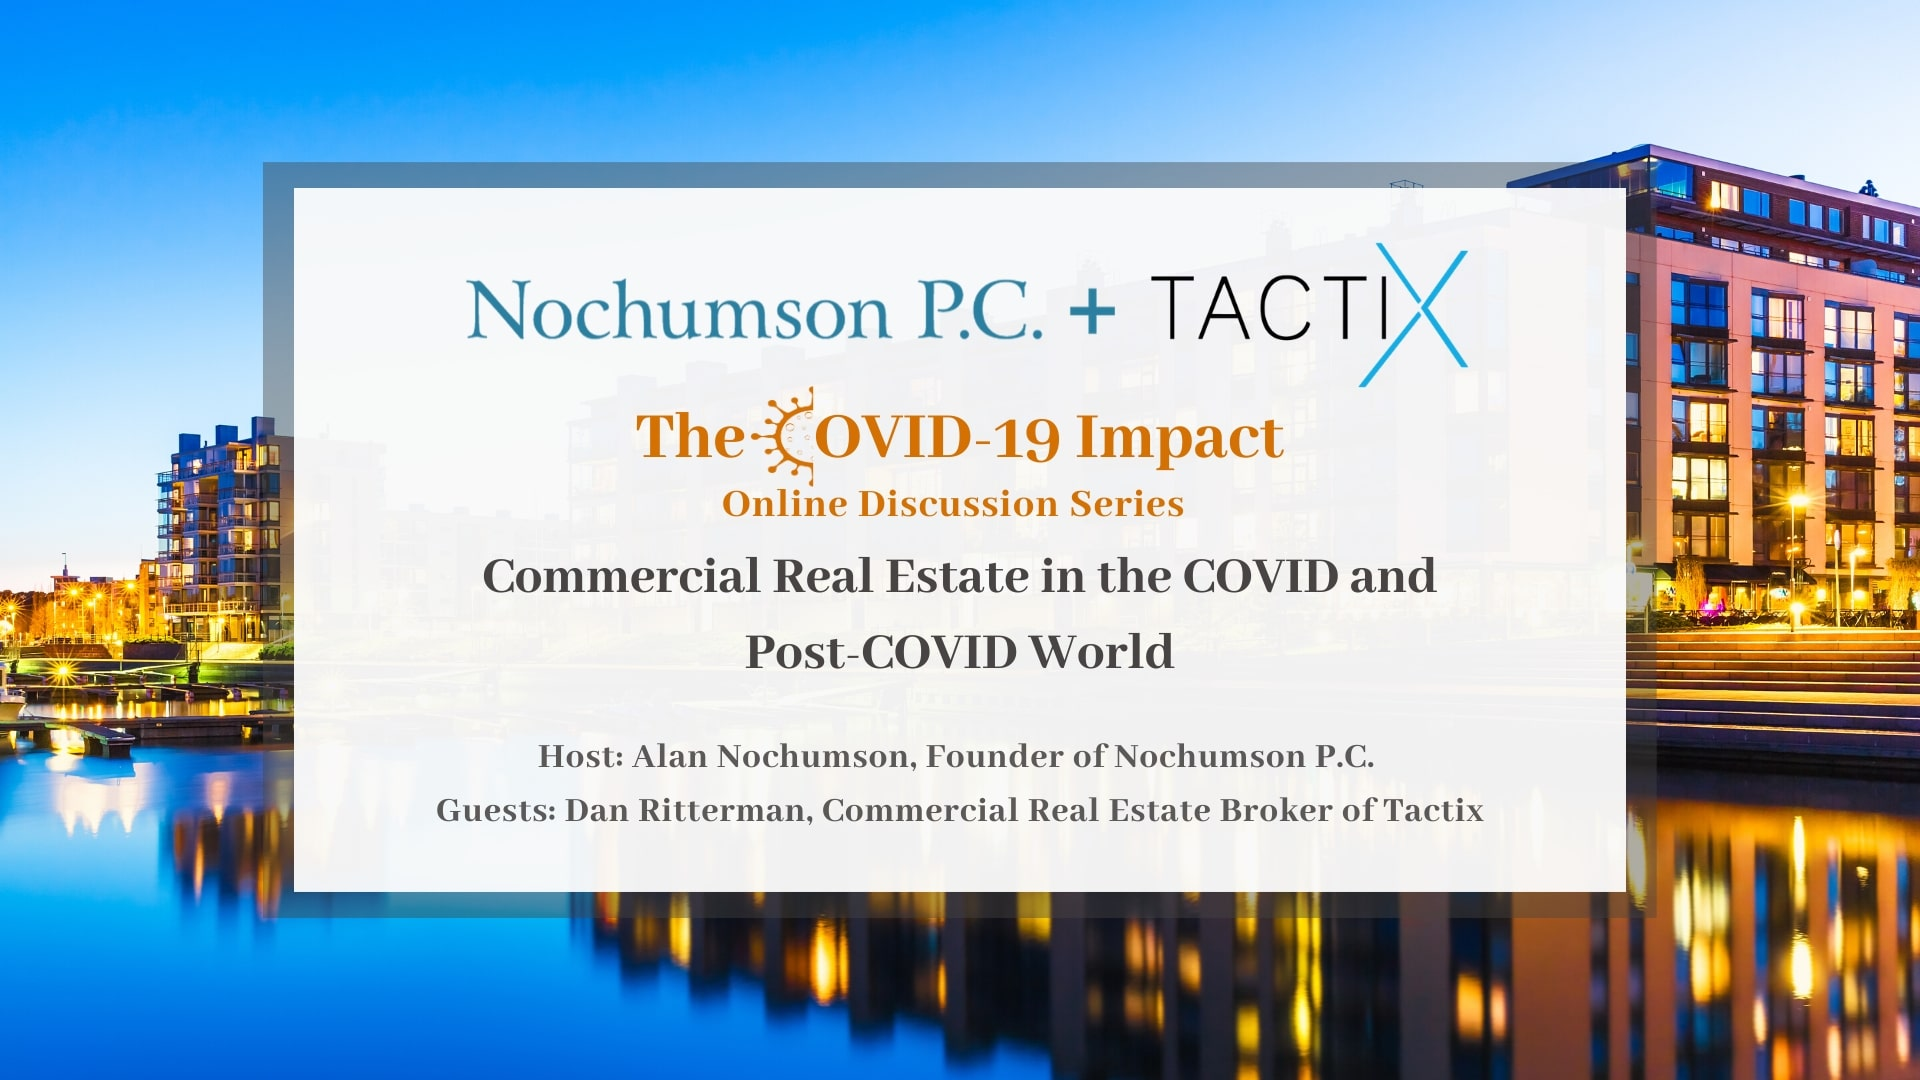 Commercial Real Estate in the COVID and Post-COVID World